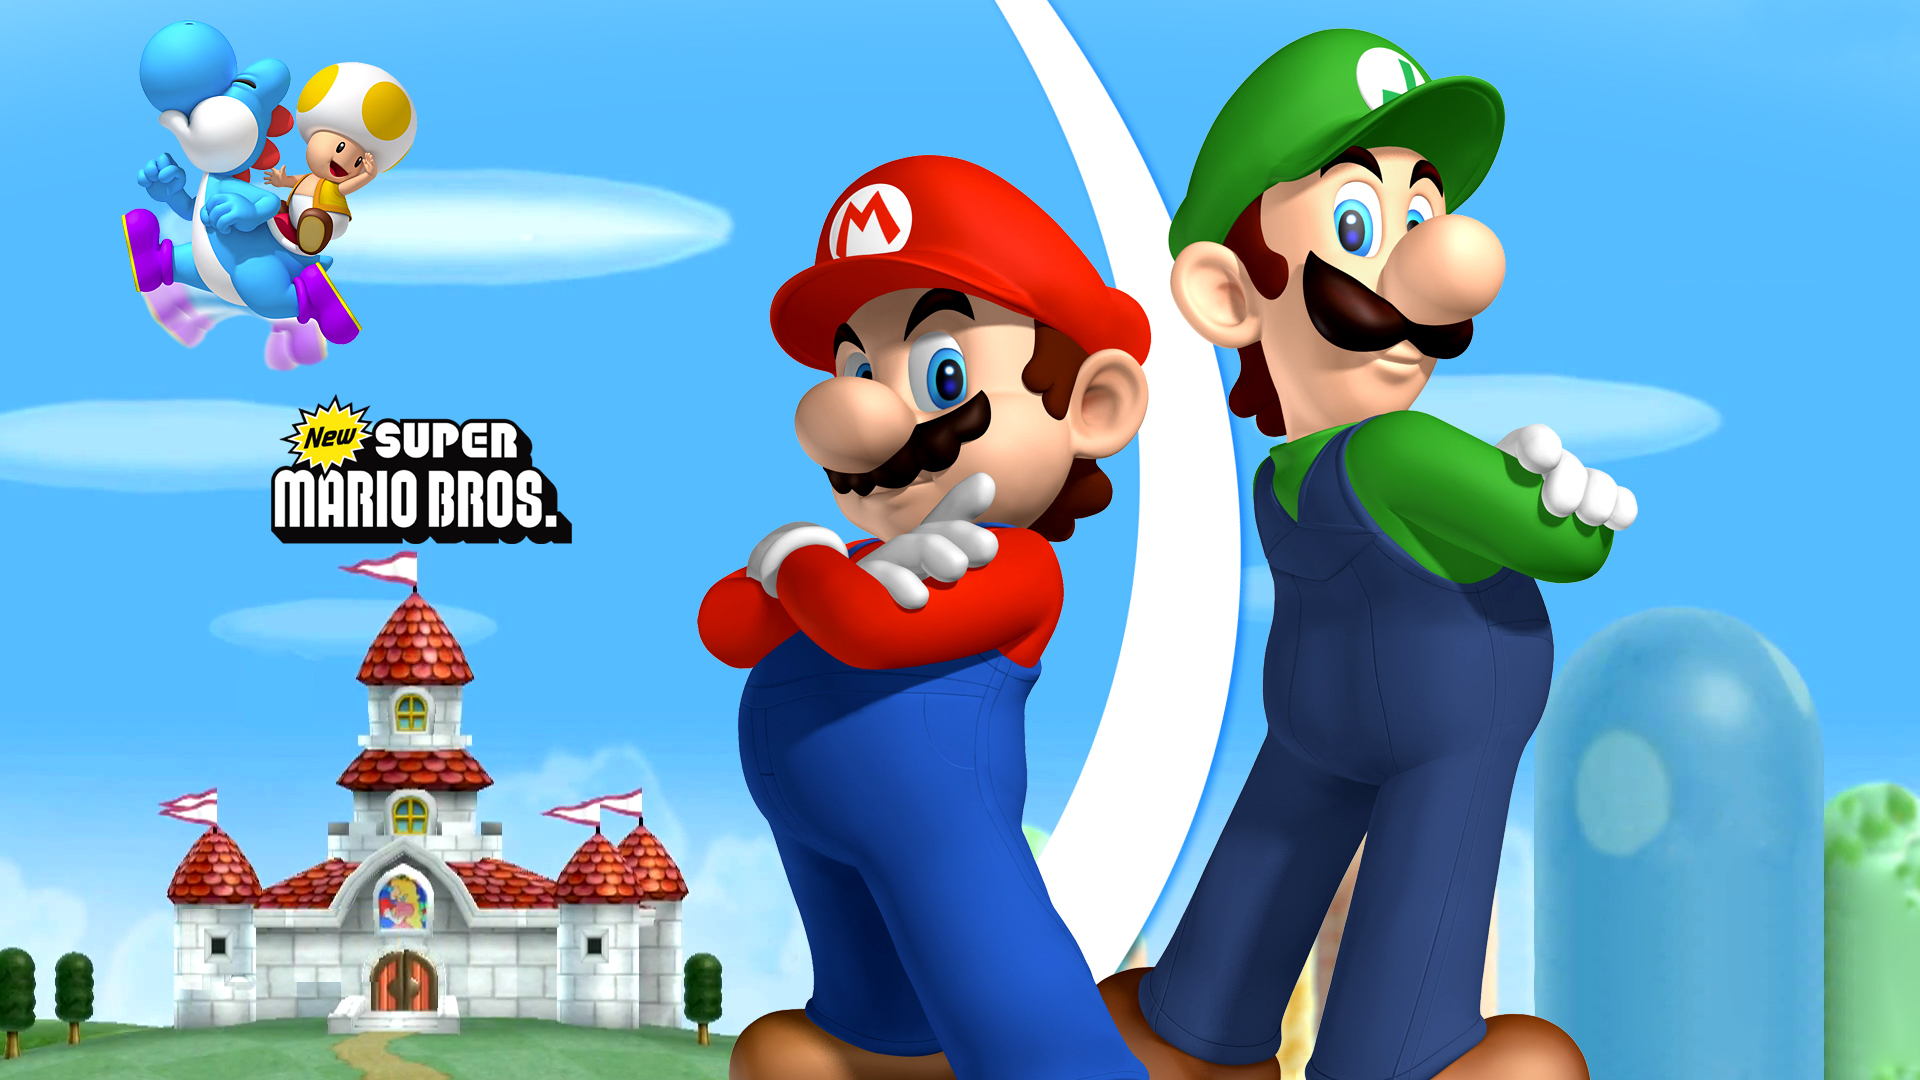 New Super Mario Bros. Wii Full HD Wallpaper and Hintergrund ...